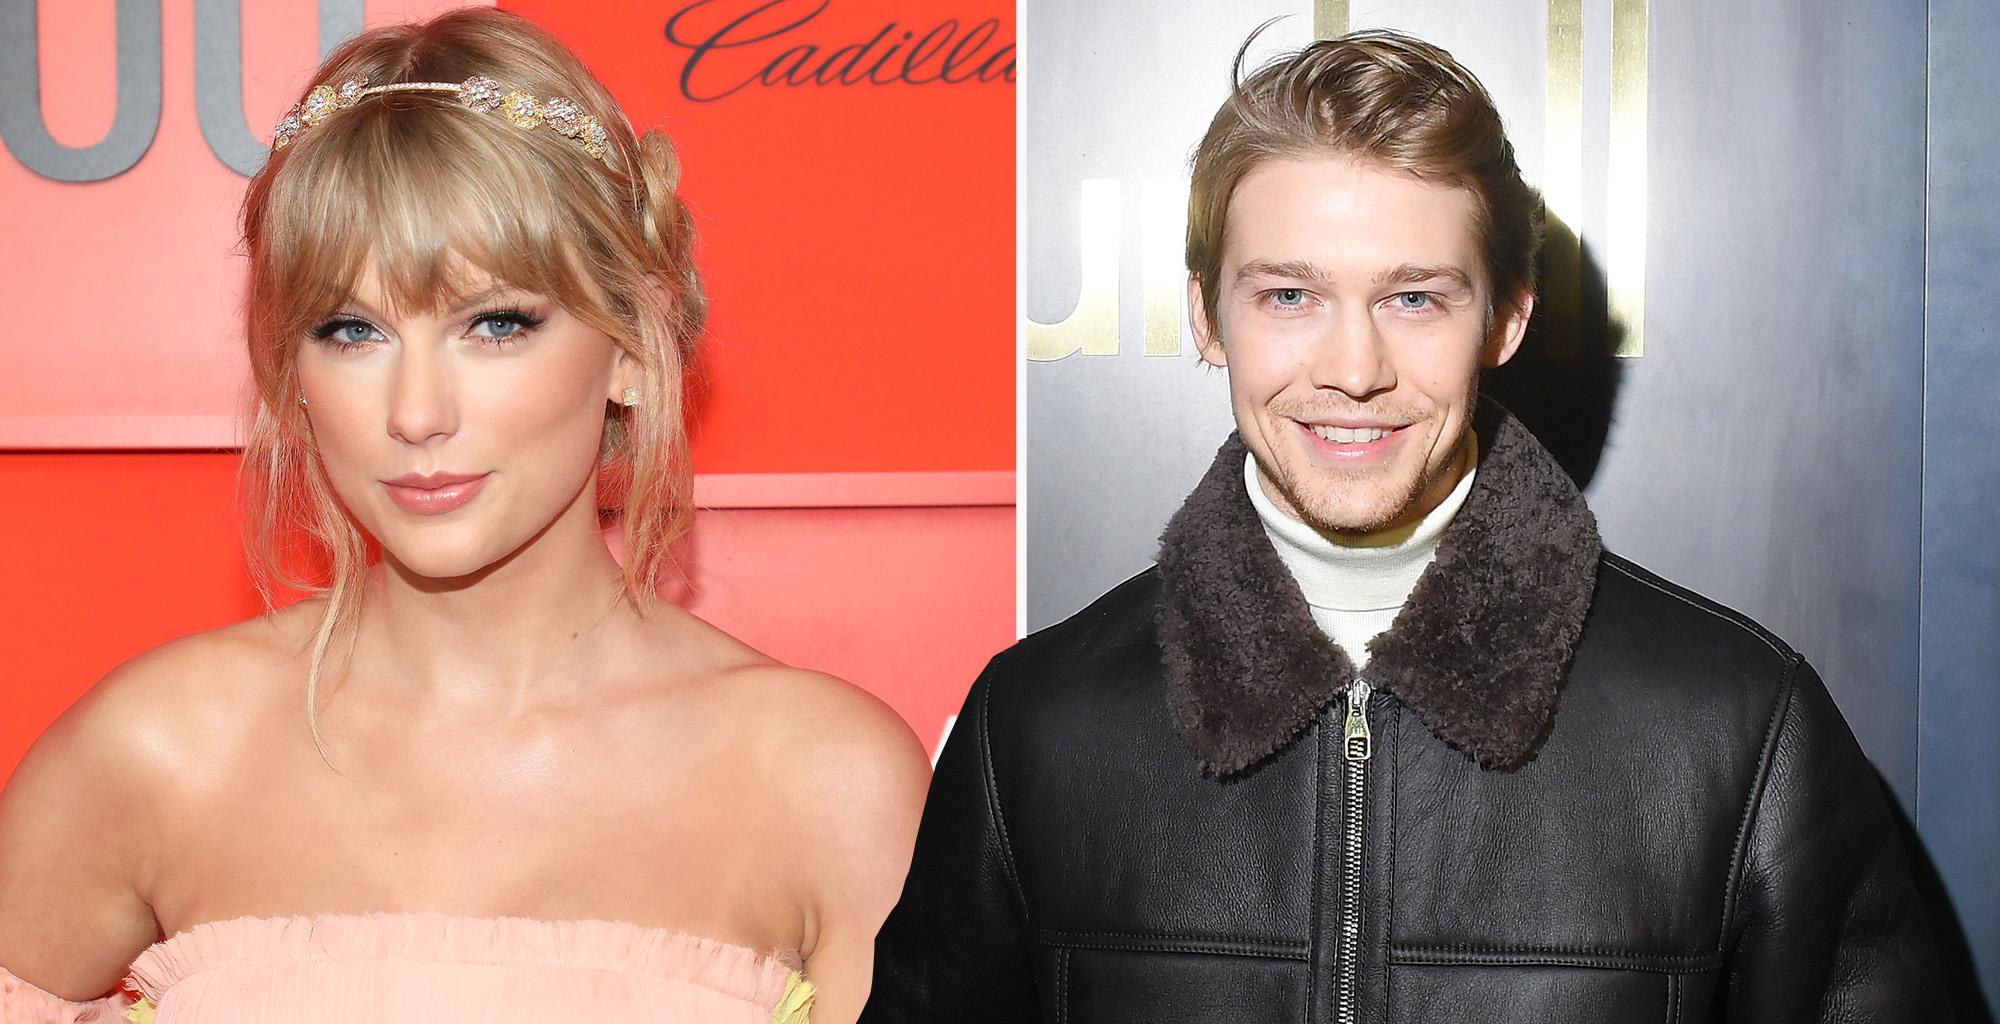 Taylor Swift Opens Up About Romance With Joe Alwyn Like Never Before - Check Out What She Revealed!